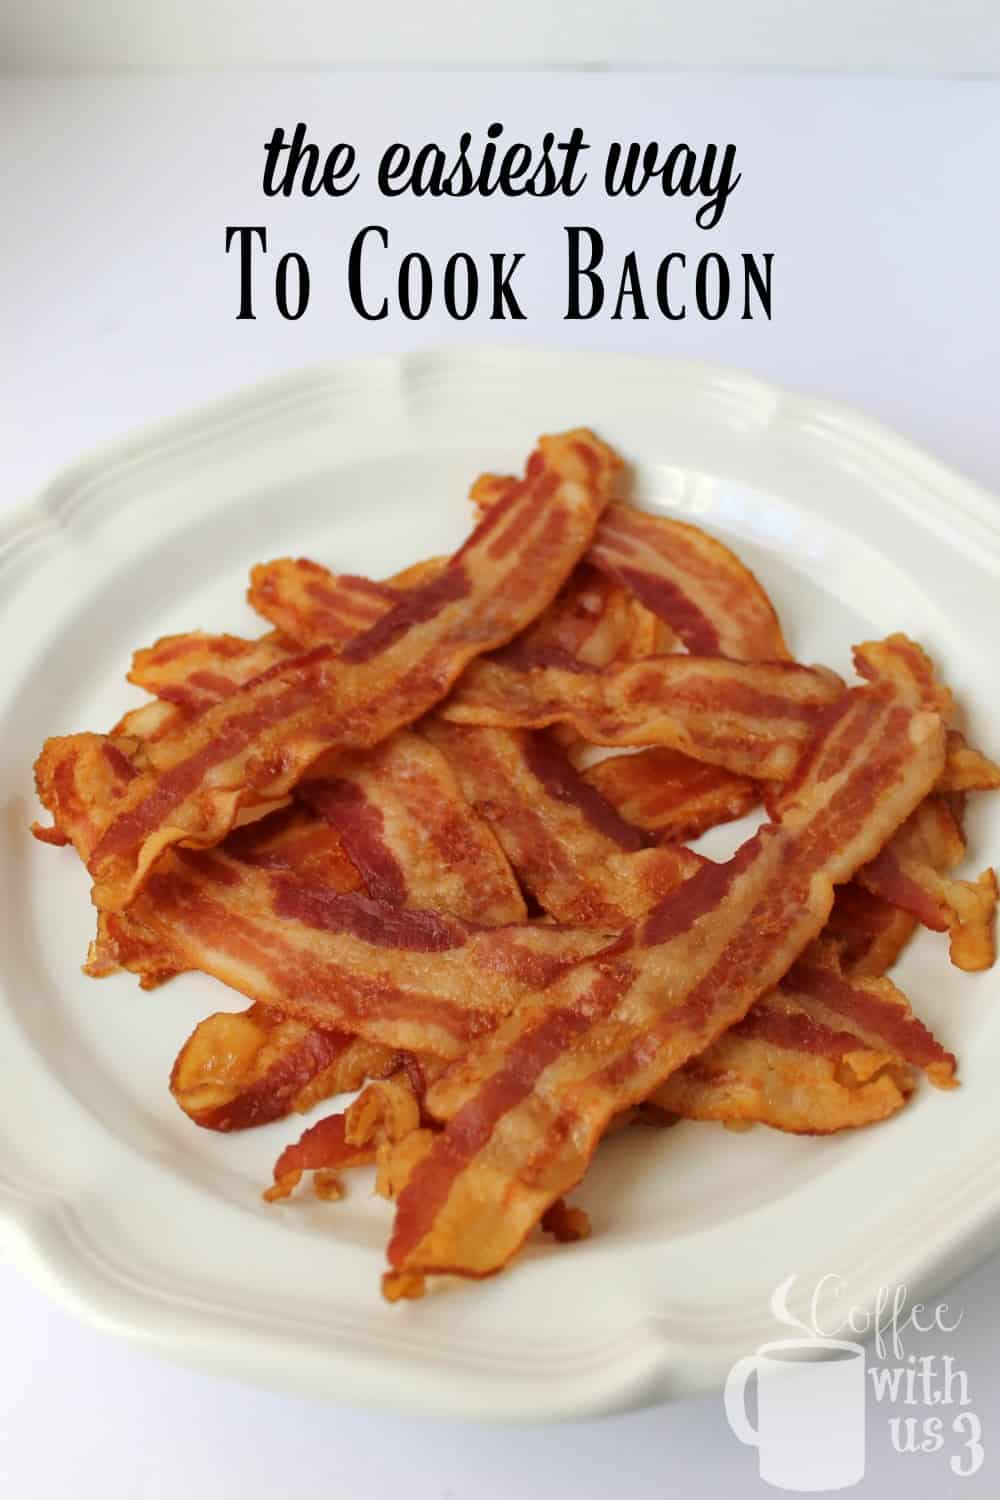 Tired of standing over a hot pan with grease splattering on you? Then you're going to love the easiest way to cook bacon, a hands-off approach!